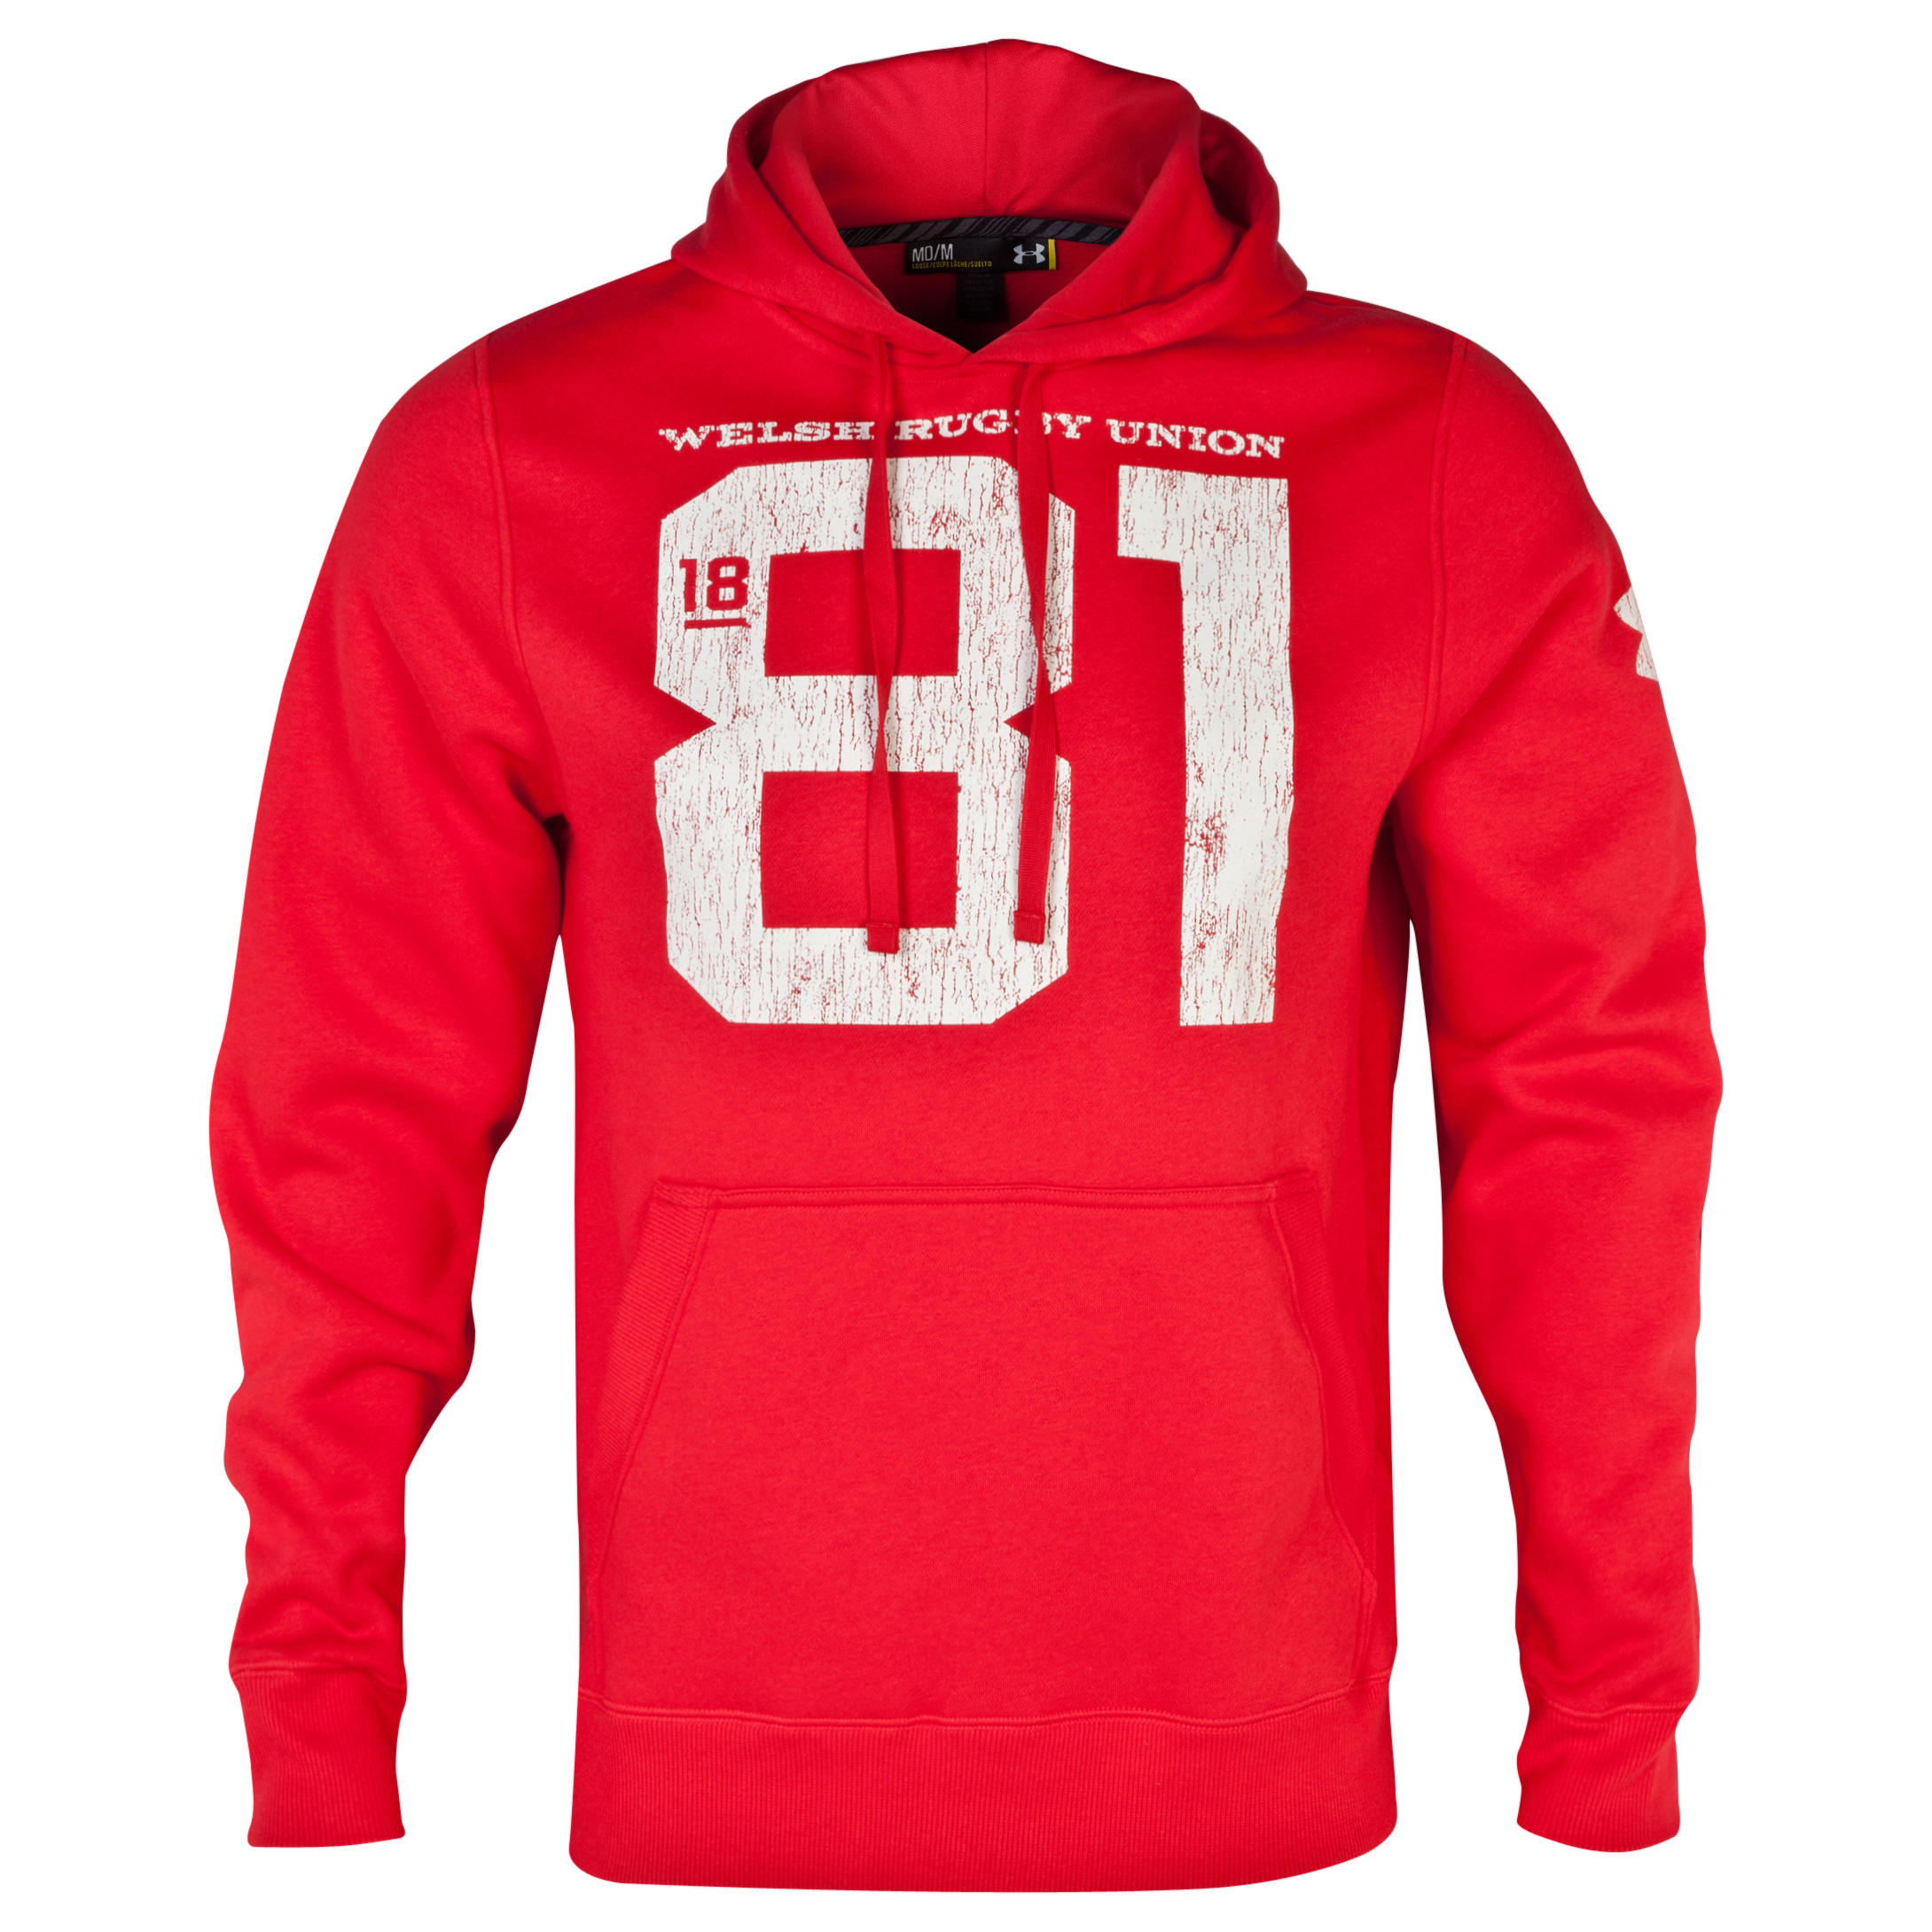 Wales Rugby Union Storm Hoody - Red